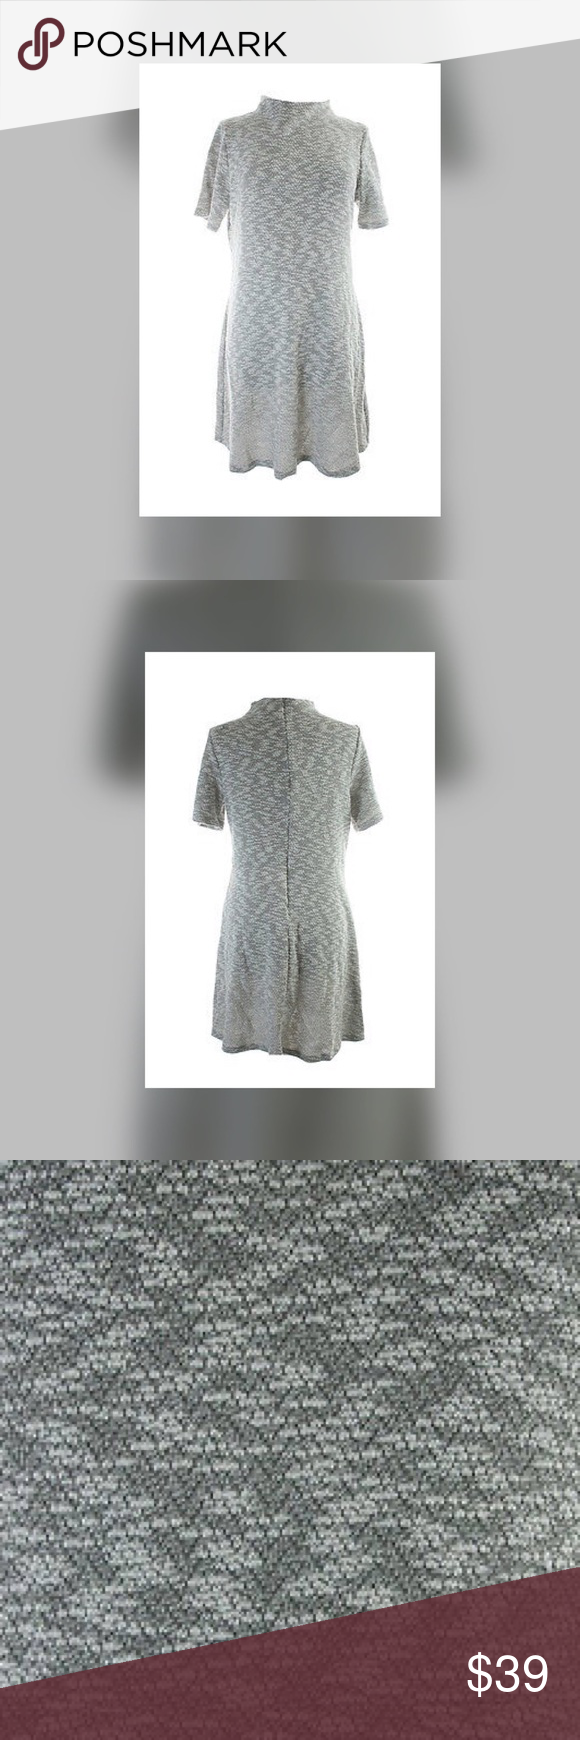 Bar Iii New Grey Marled Mock Turtleneck Dress B42 Short Sleeve A Line Form Please See Size Chart For Sizing